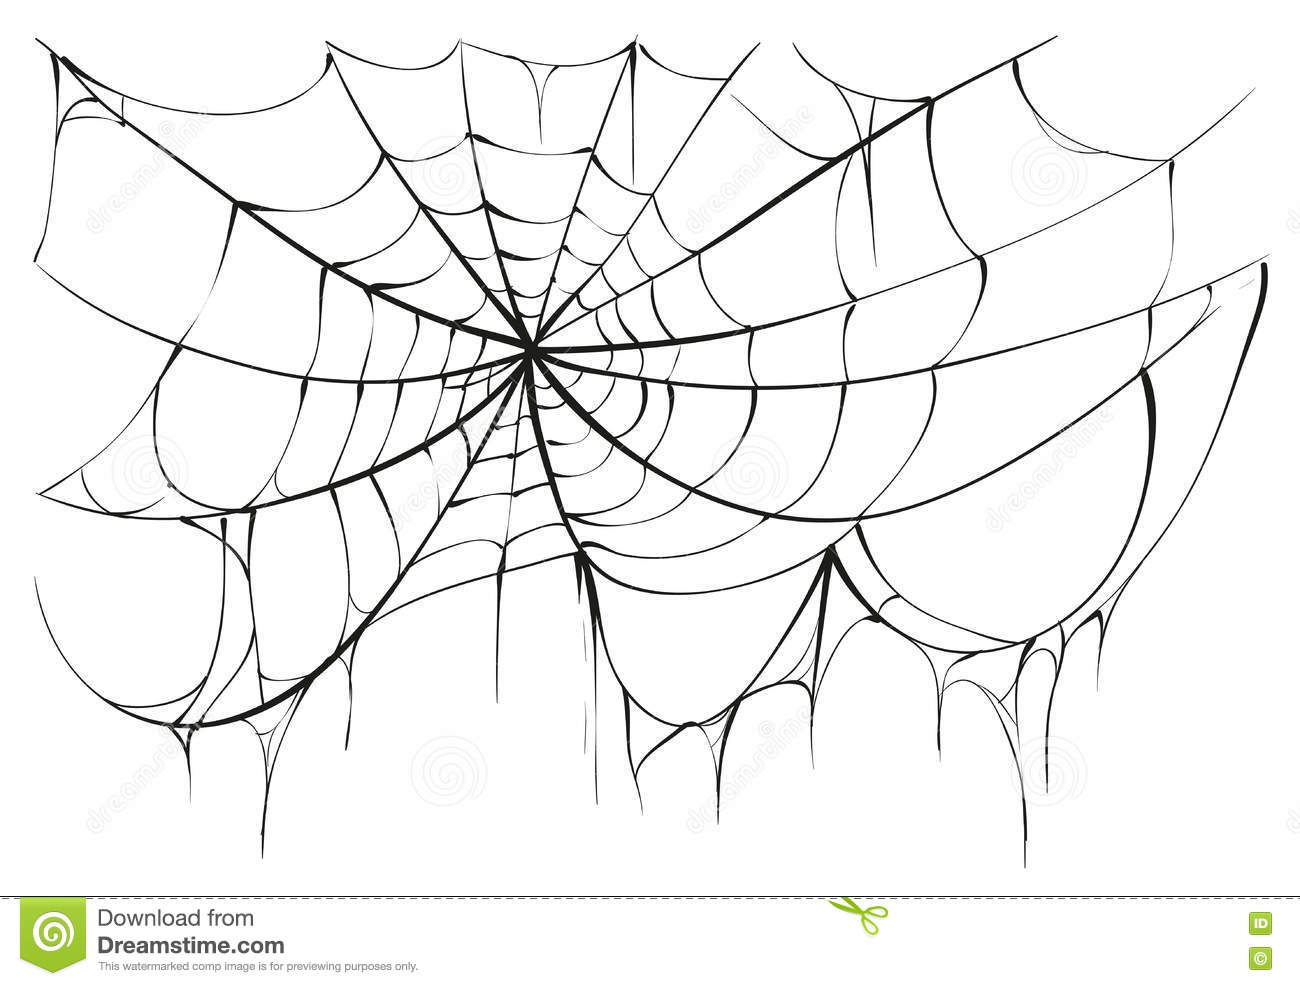 Torn Spider Web On White Background Stock Vector